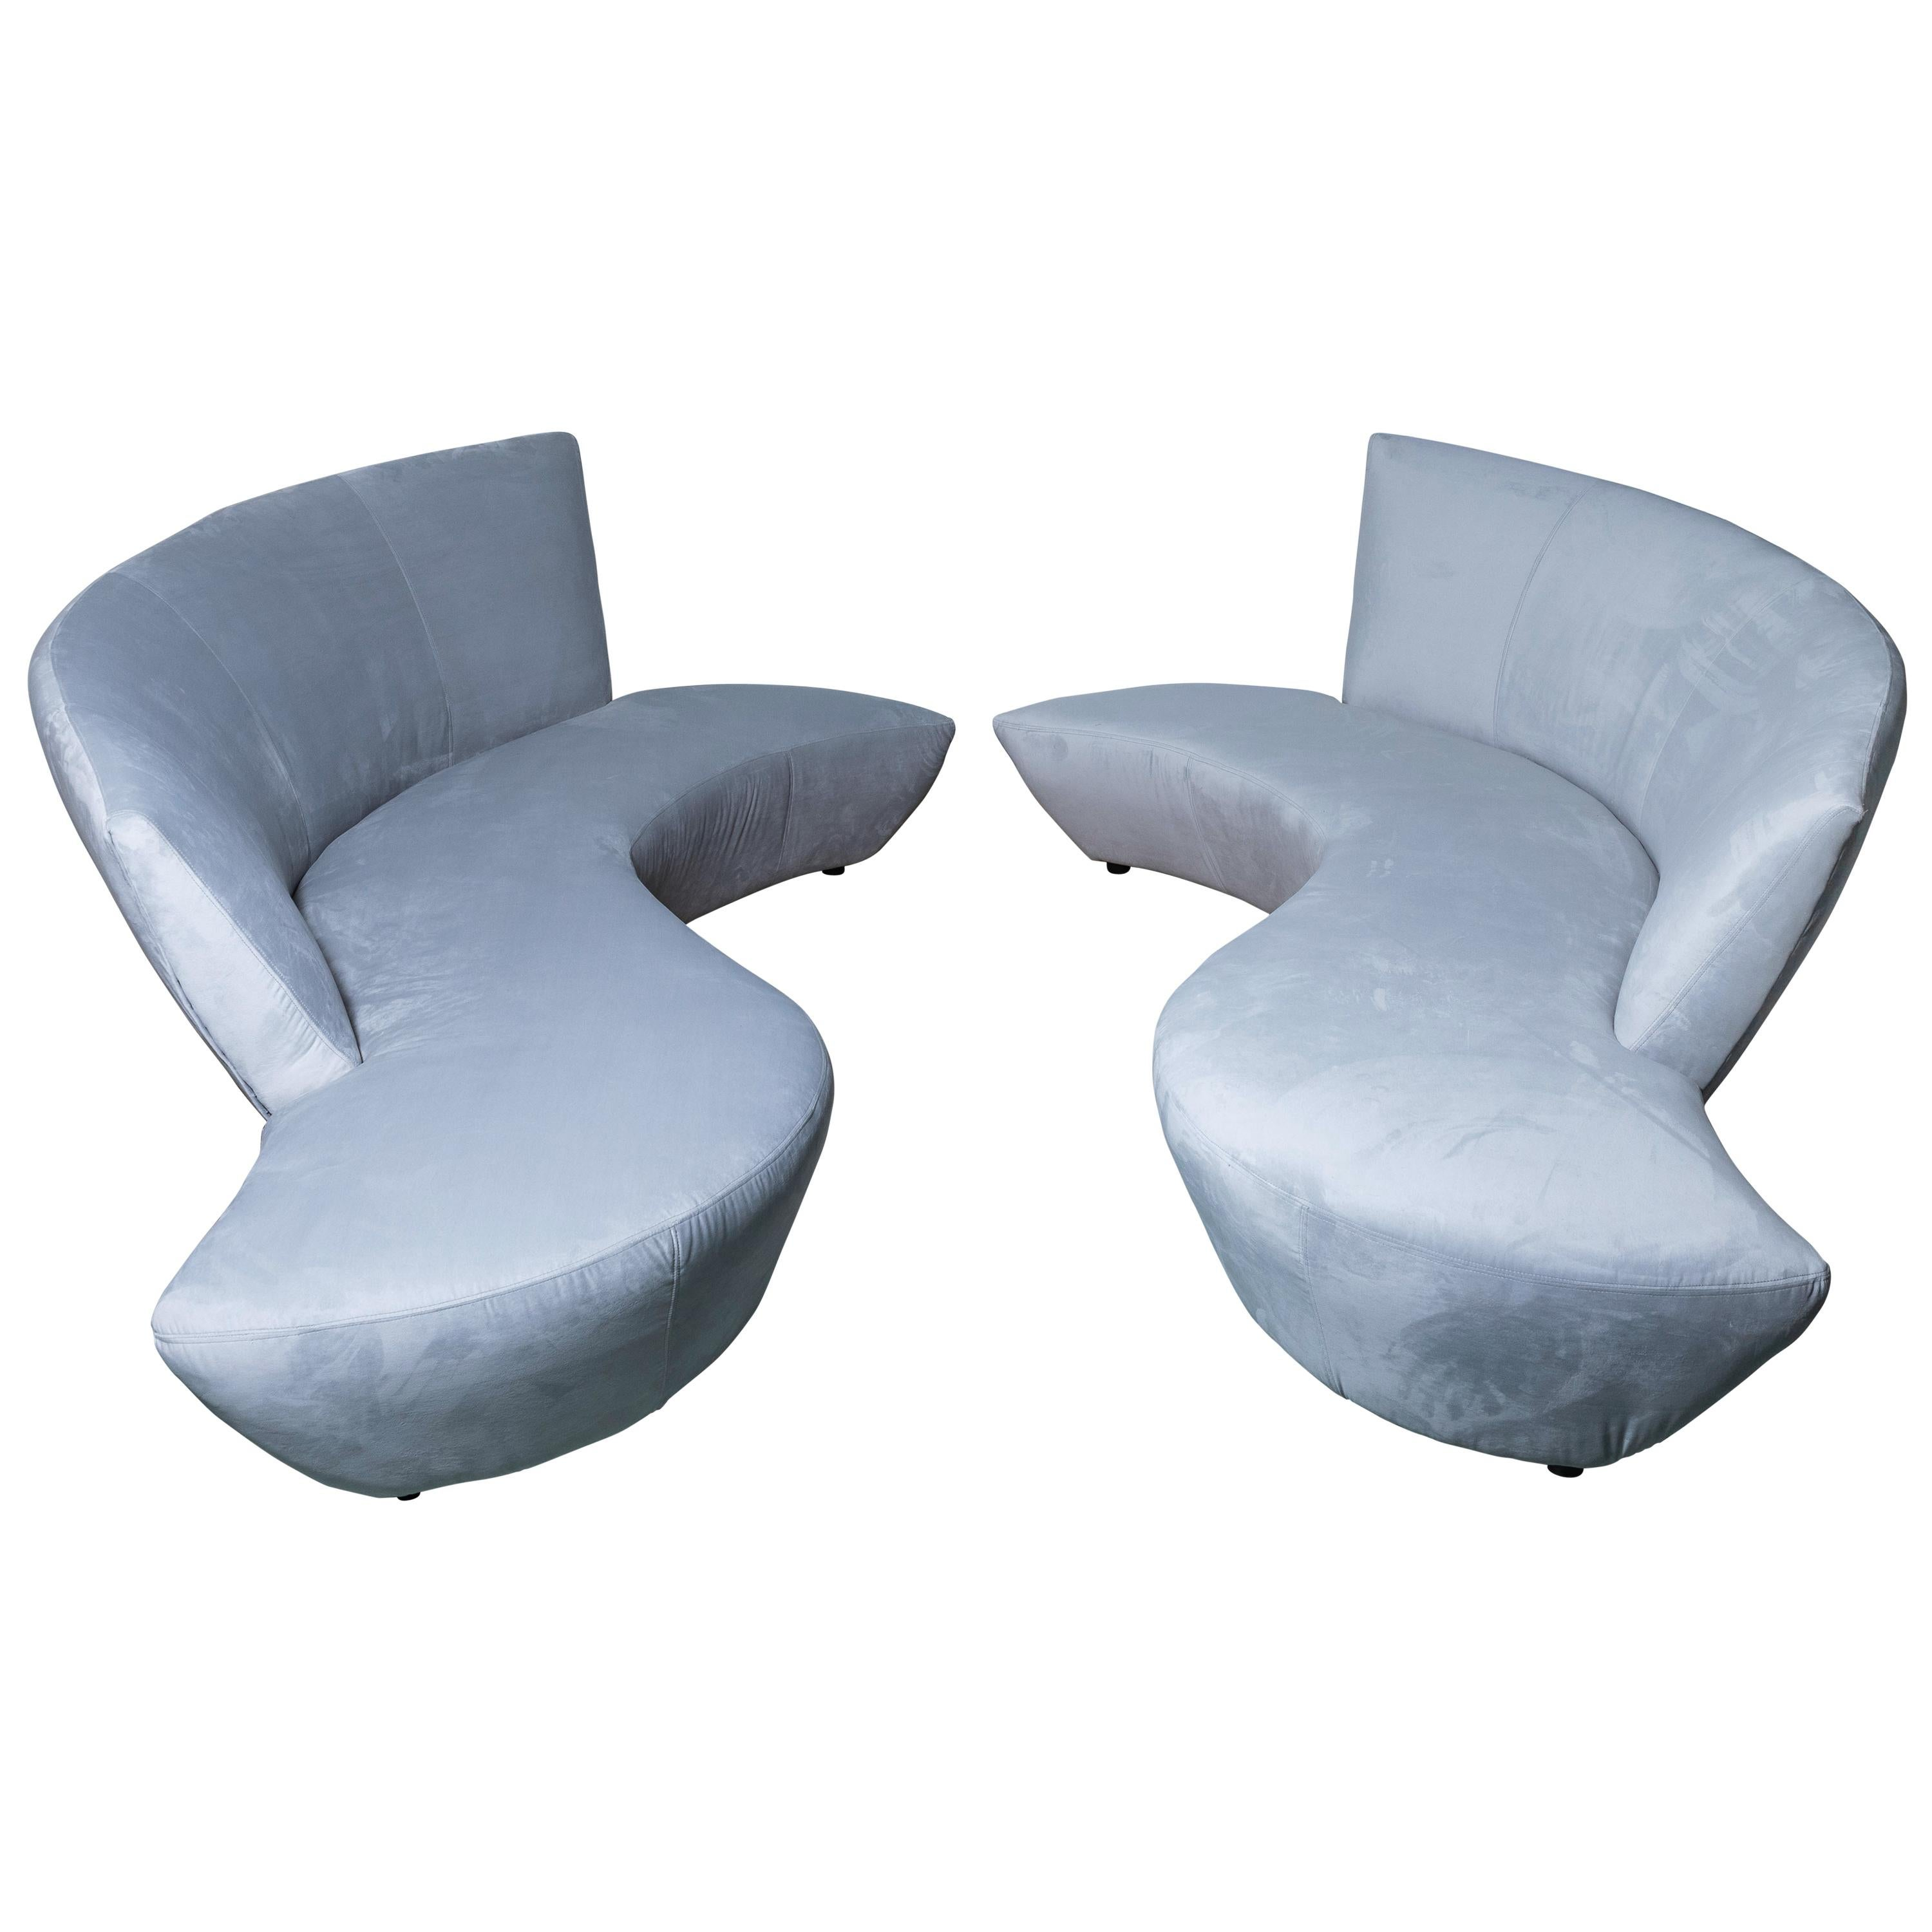 sofas comprar bilbao sofa set designs for office vladimir kagan 74 sale at 1stdibs